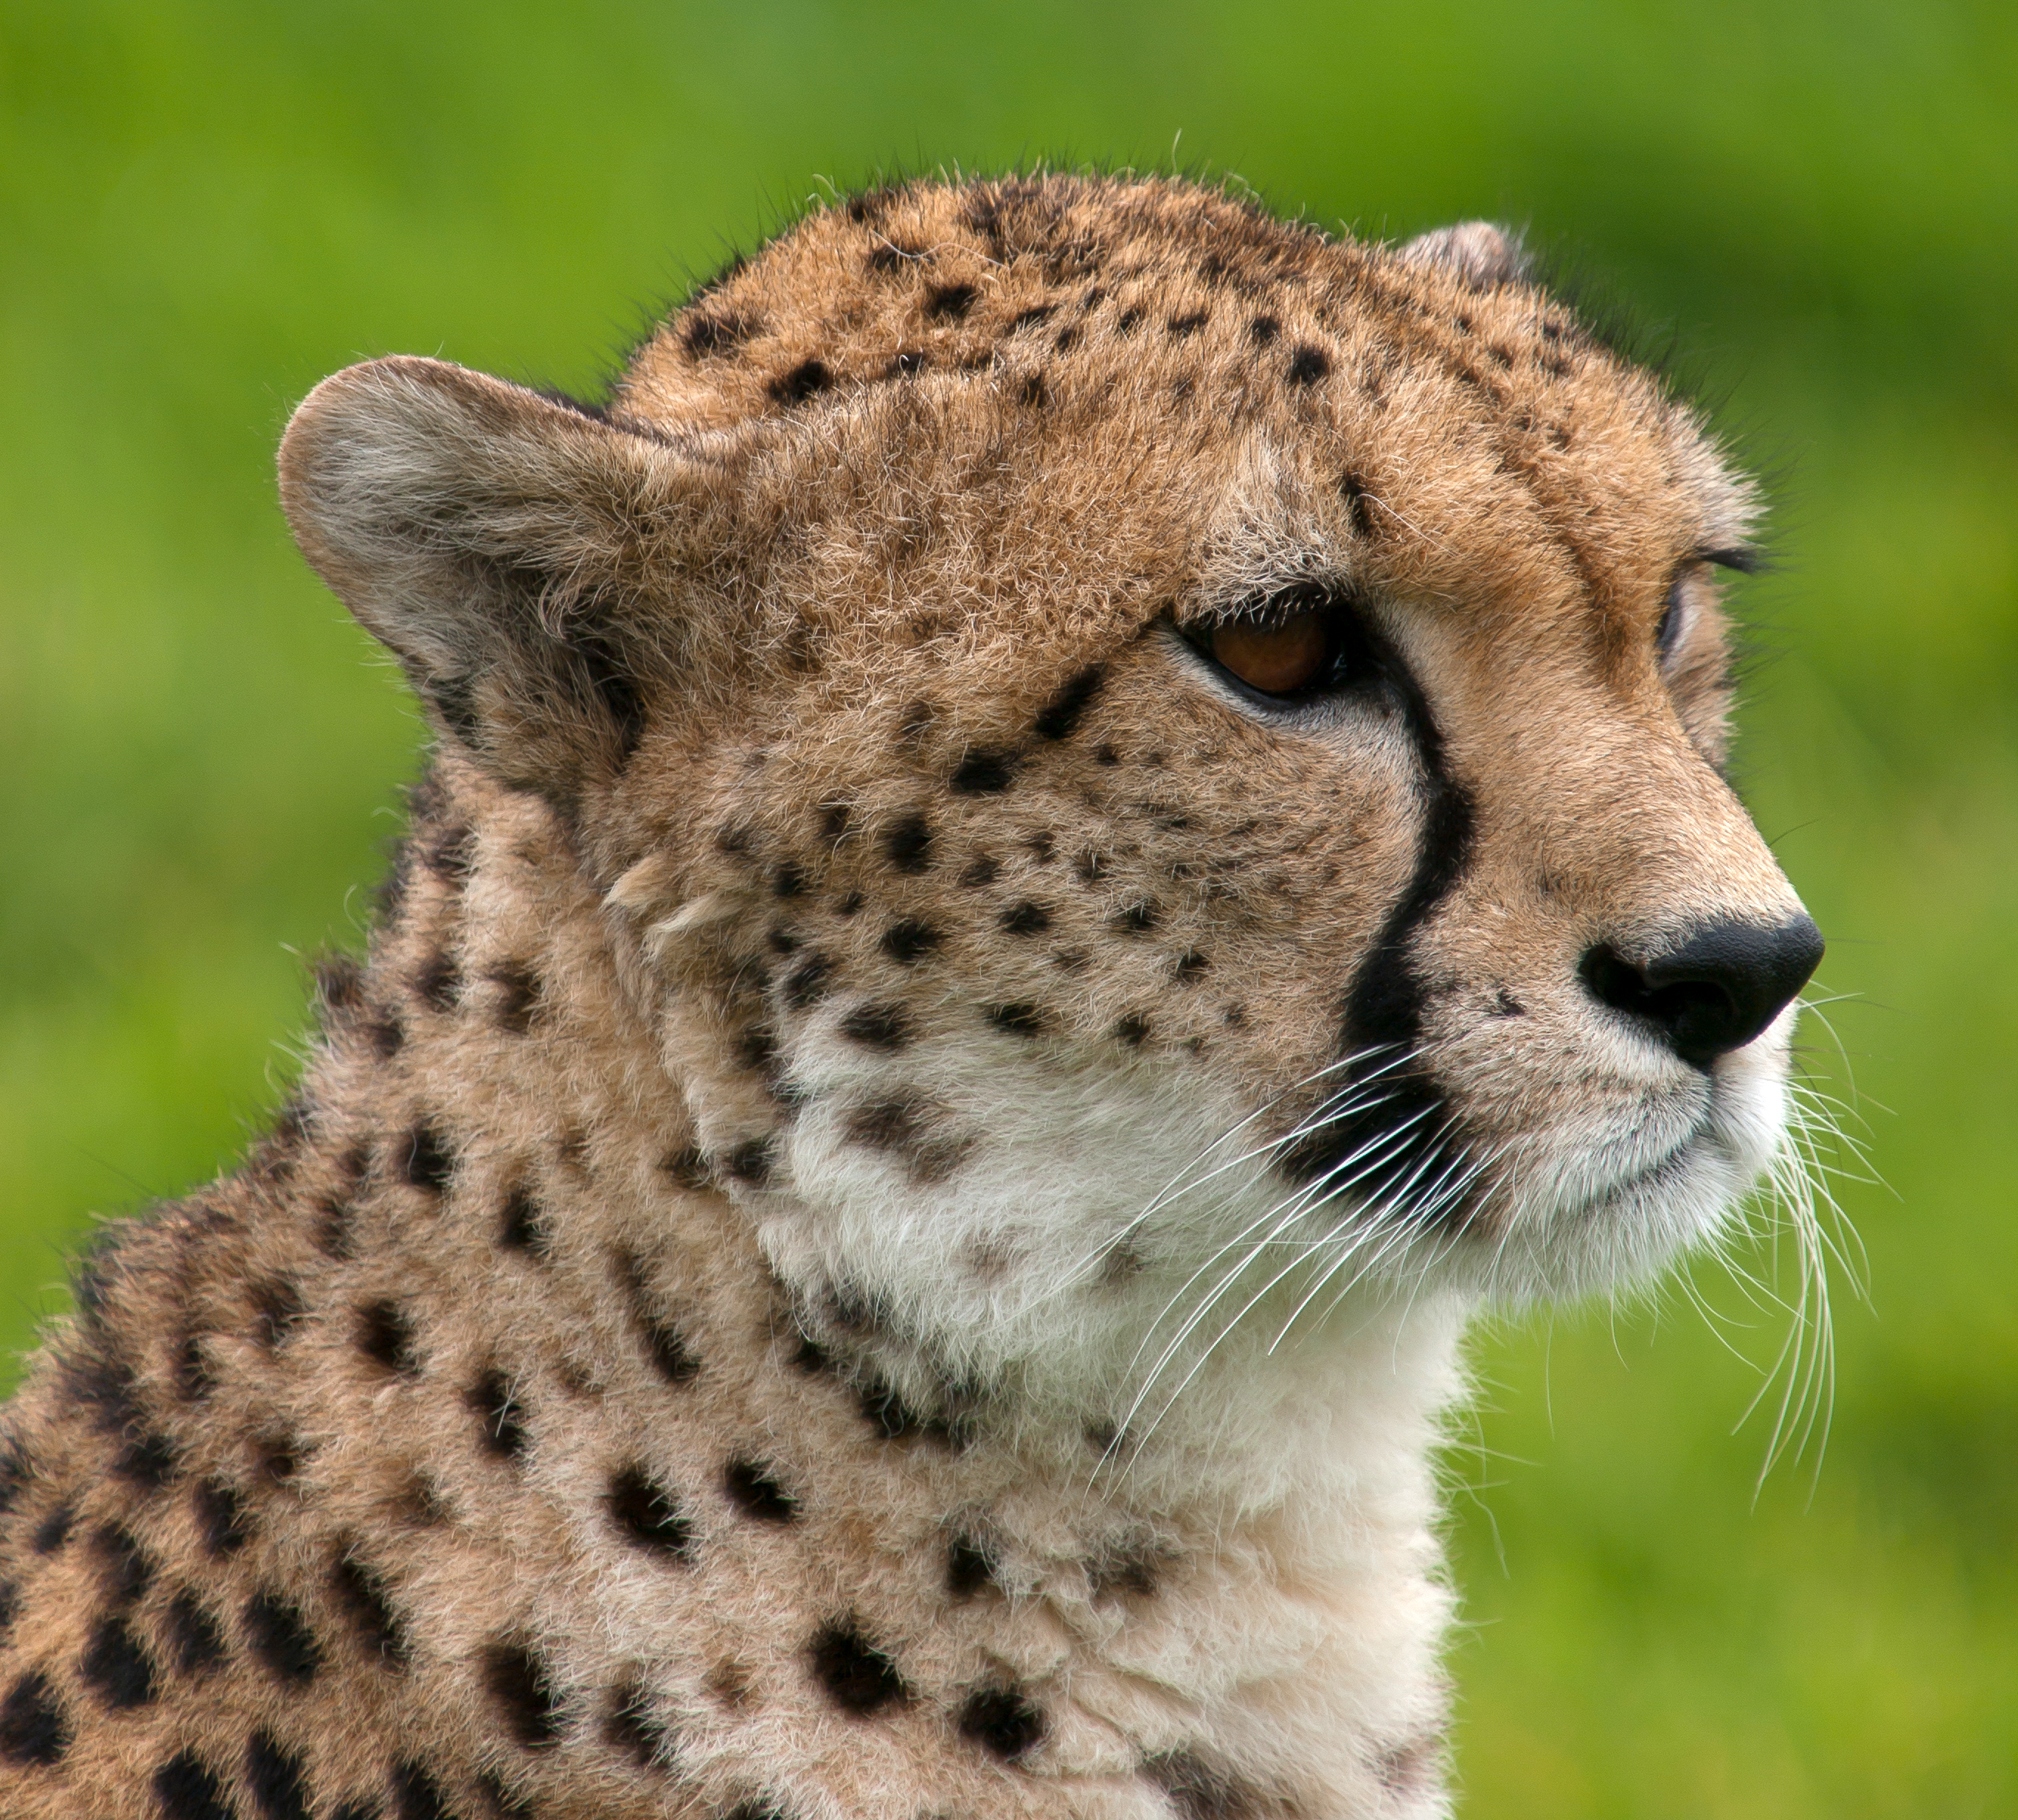 Cheetah Wikipedia